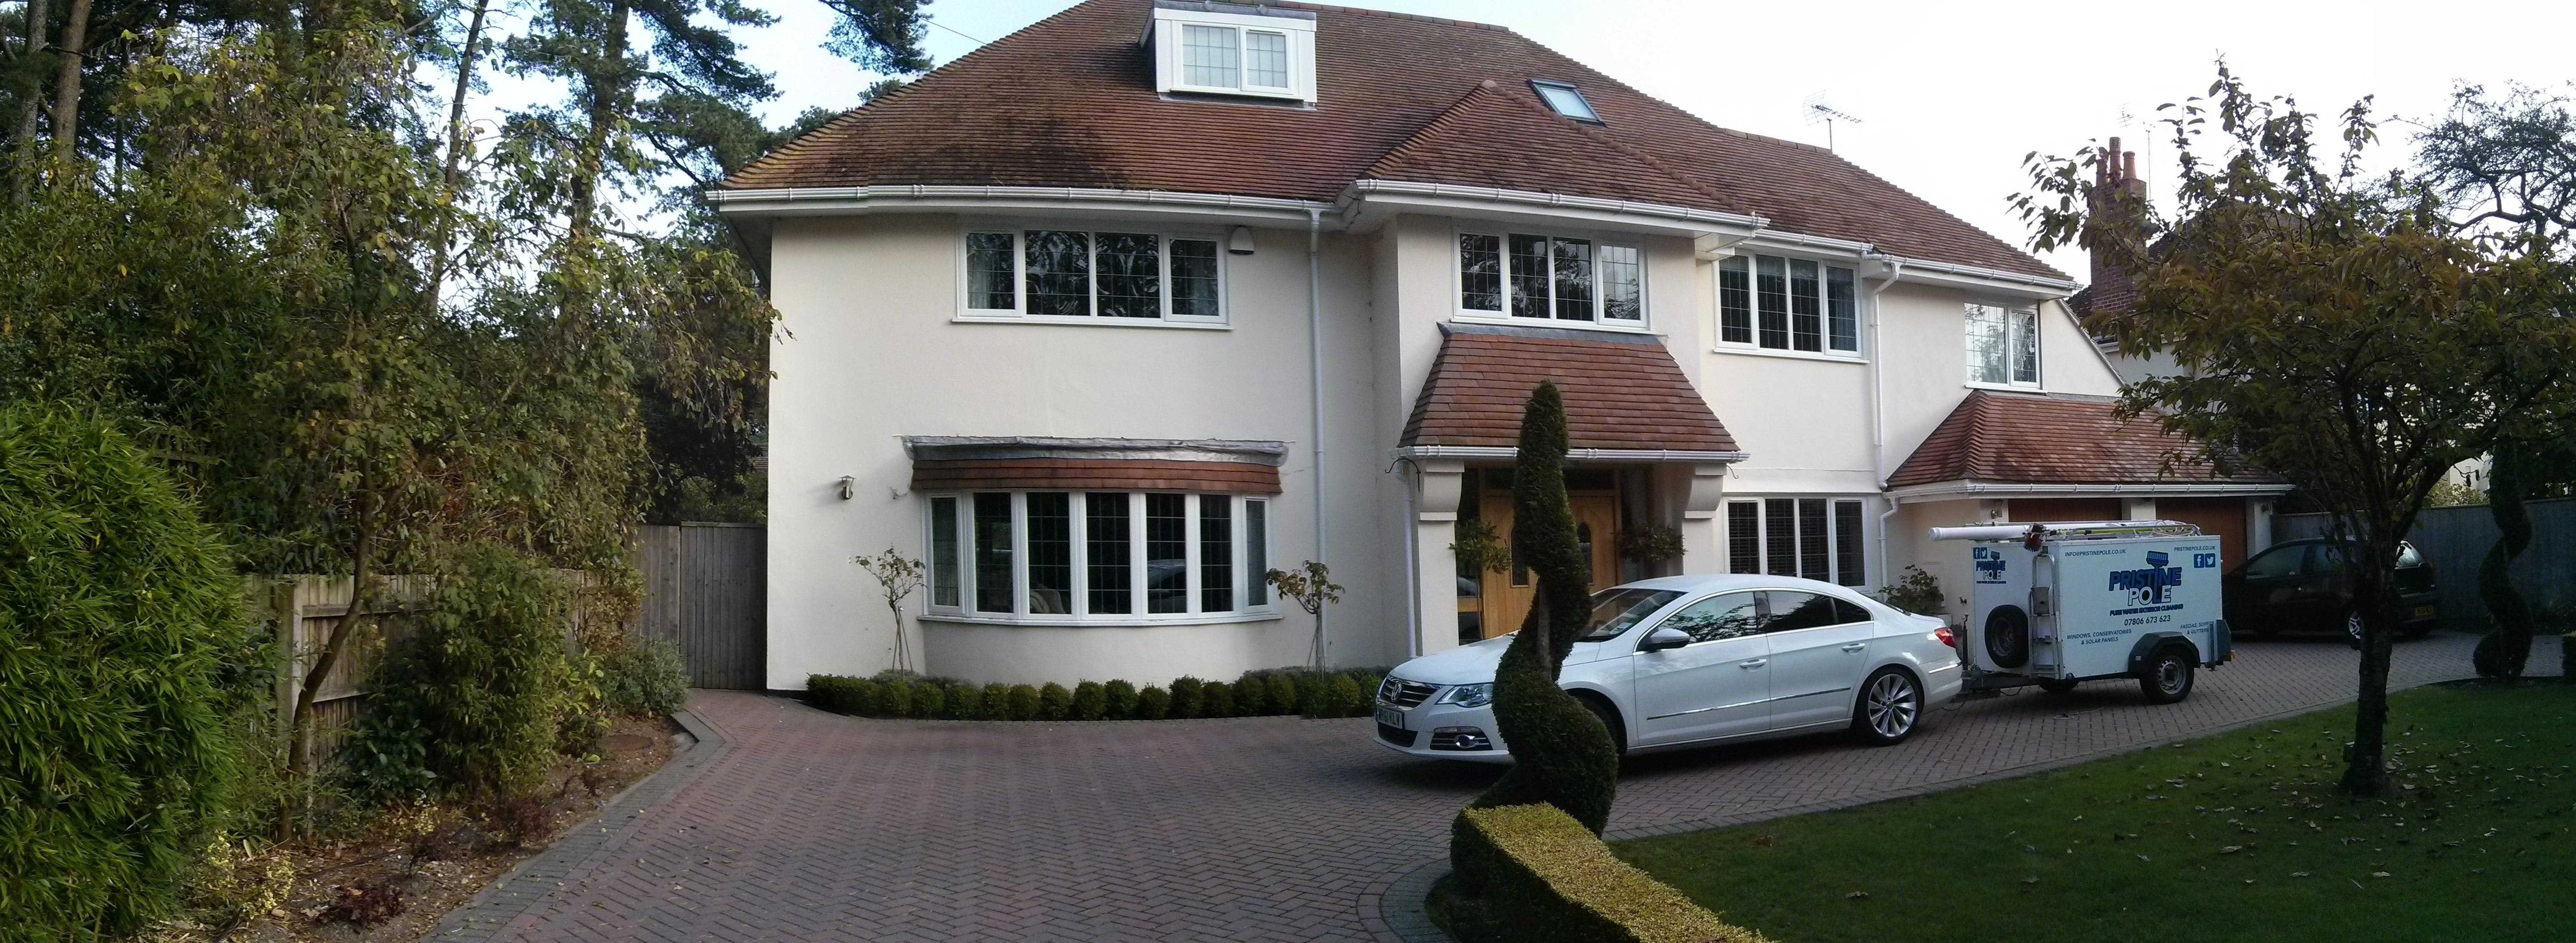 Window Cleaning Canford Cliffs